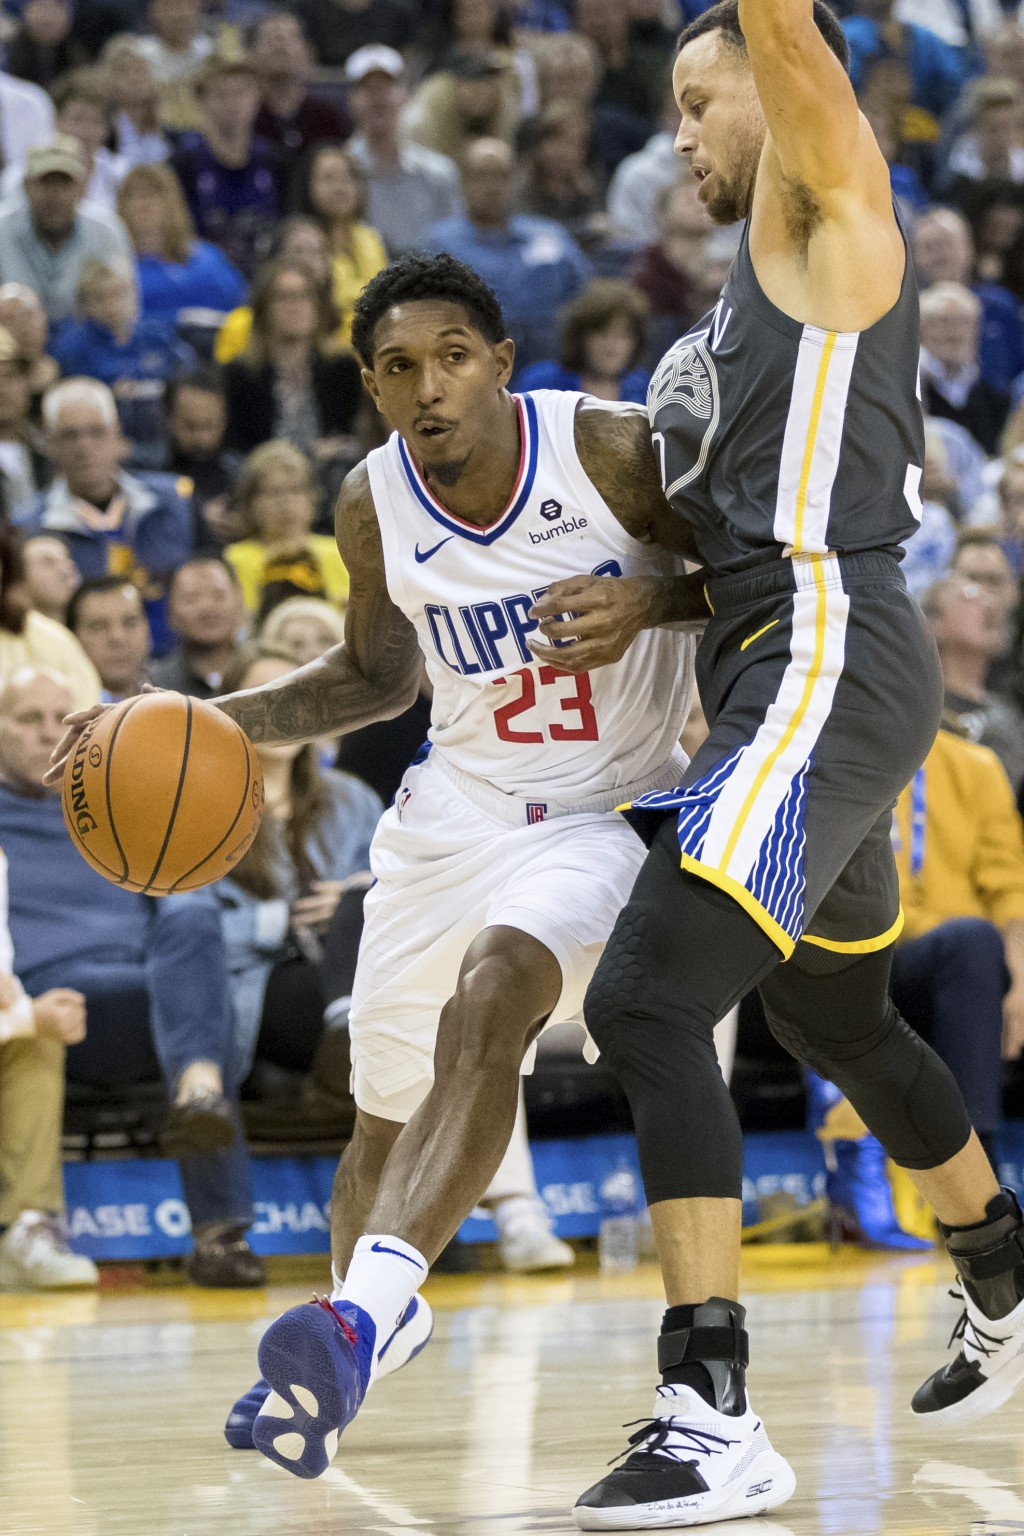 Los Angeles Clippers guard Lou Williams (23) dribbles as Golden State Warriors guard Stephen Curry defends in the second quarter of an NBA basketball